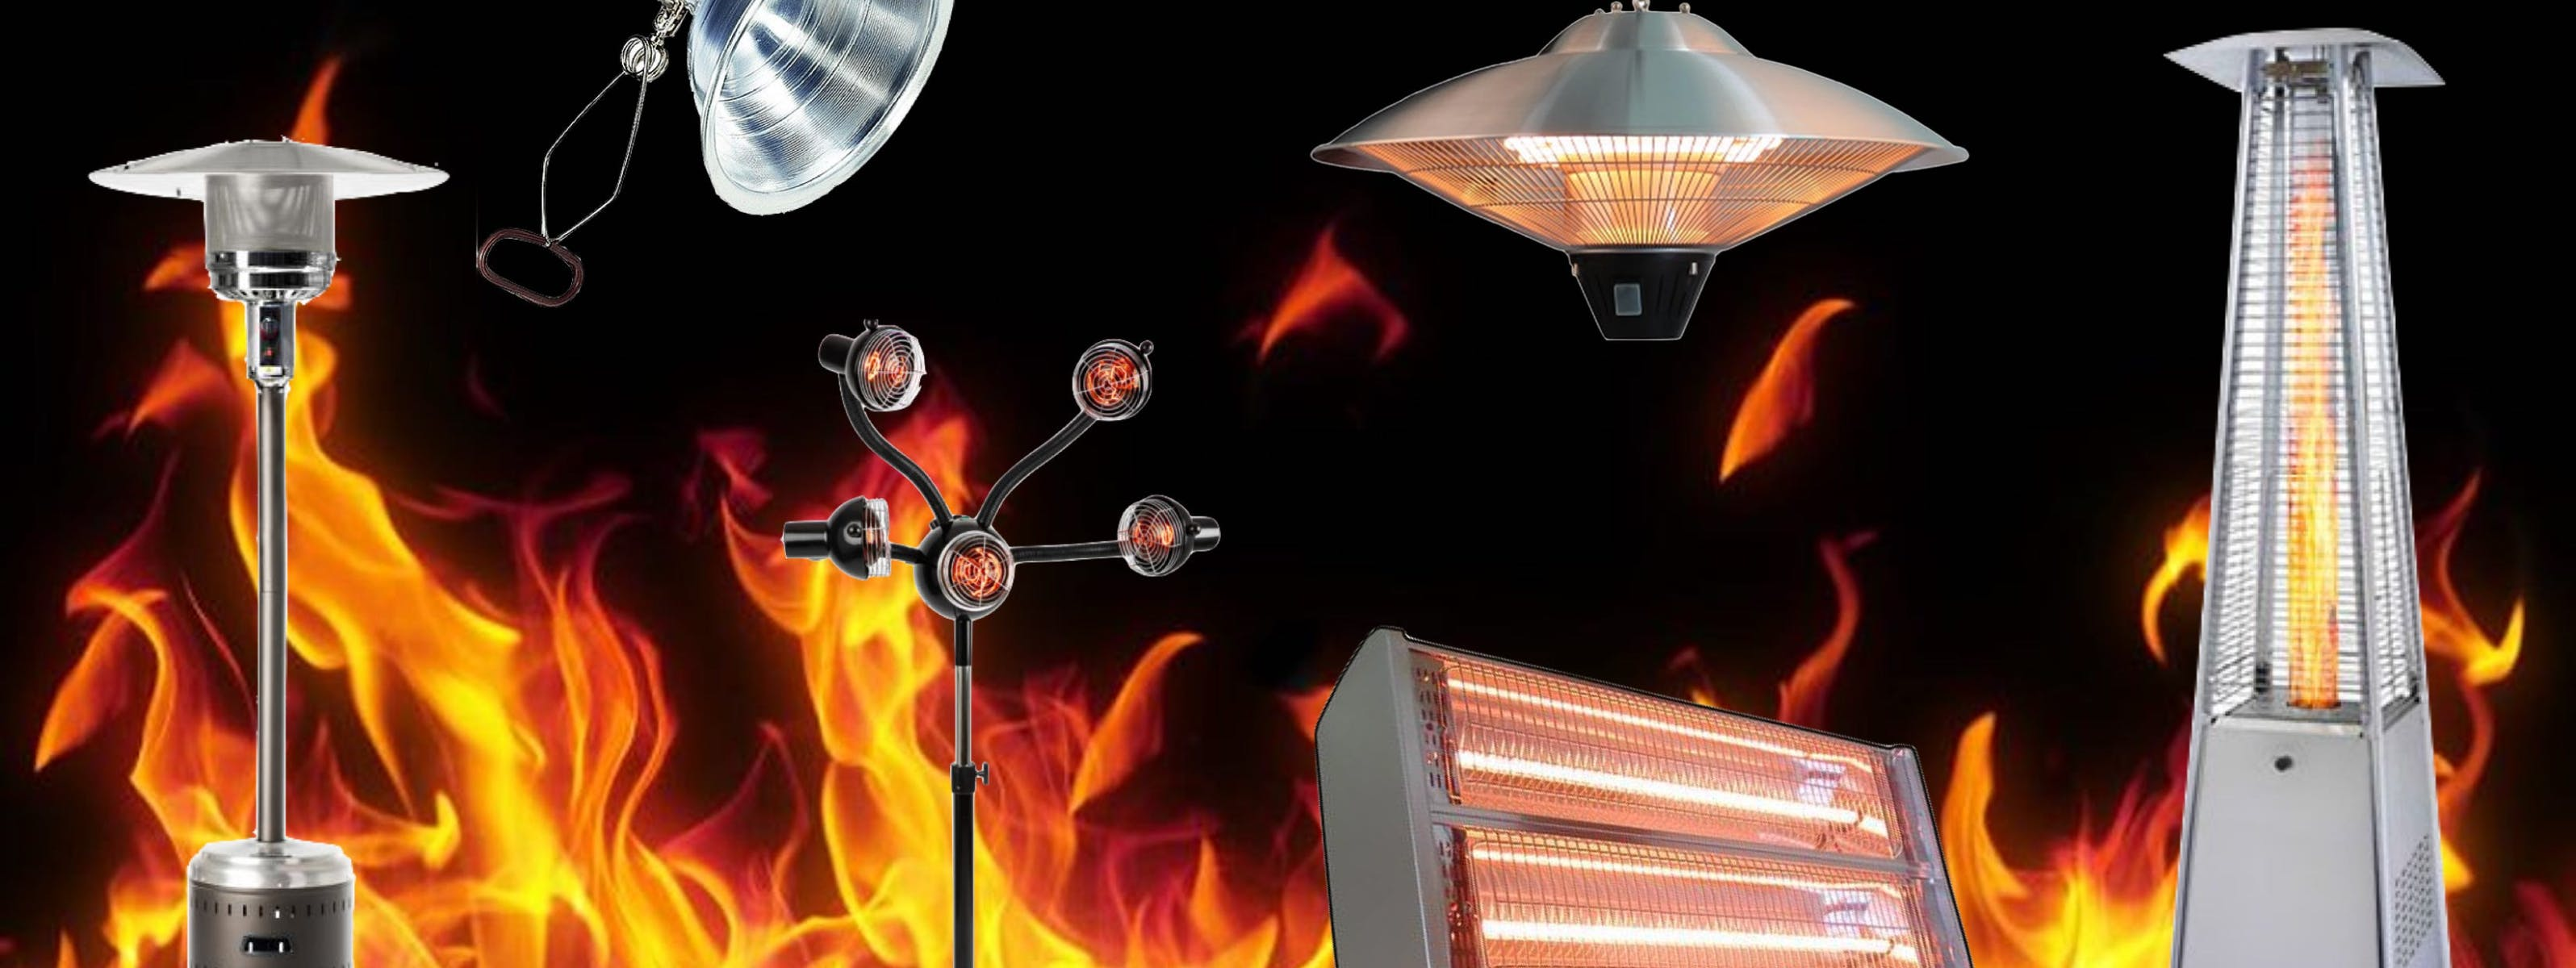 The Hottest Heat Lamps In NYC (And Where To Find Them)